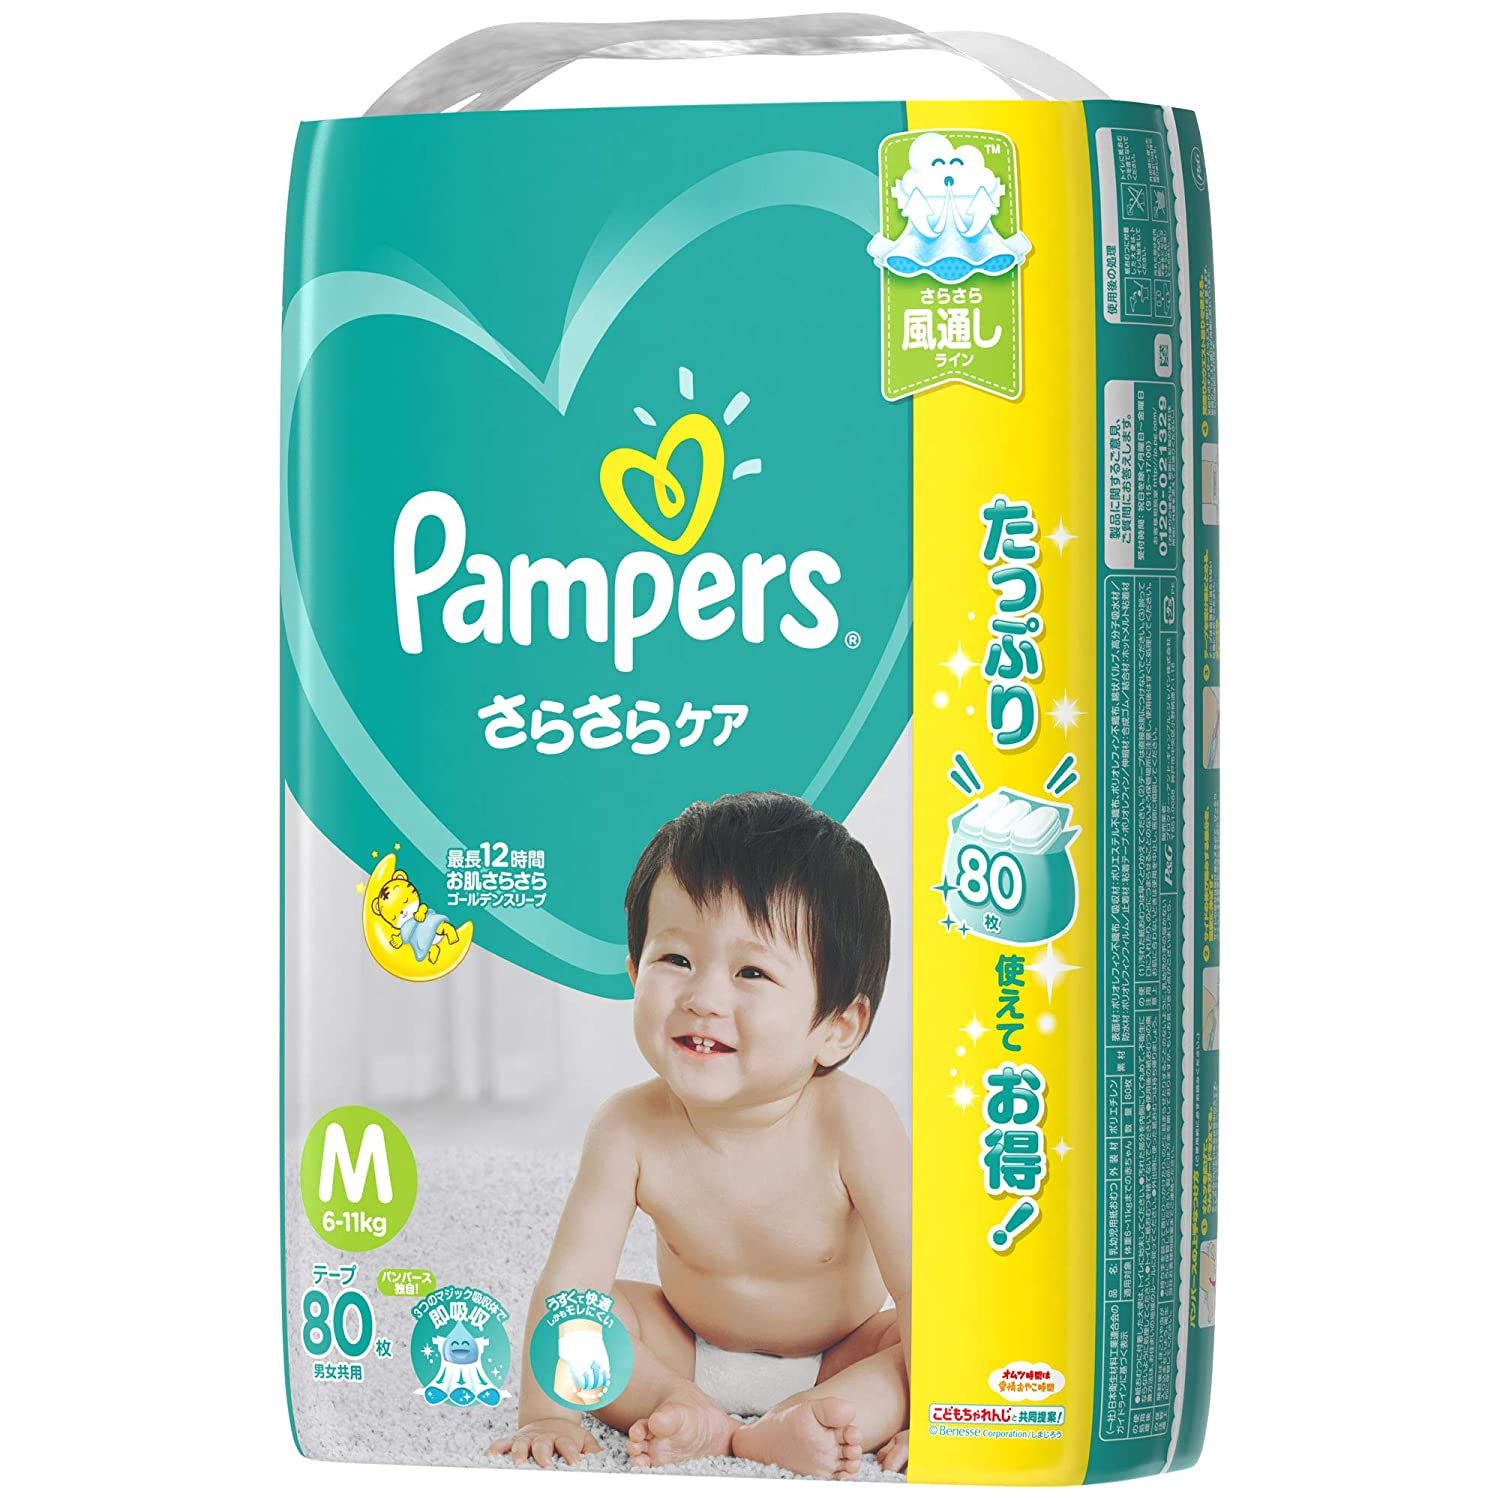 Pampers tape ultra Jumbo M 80 sheets (tape)